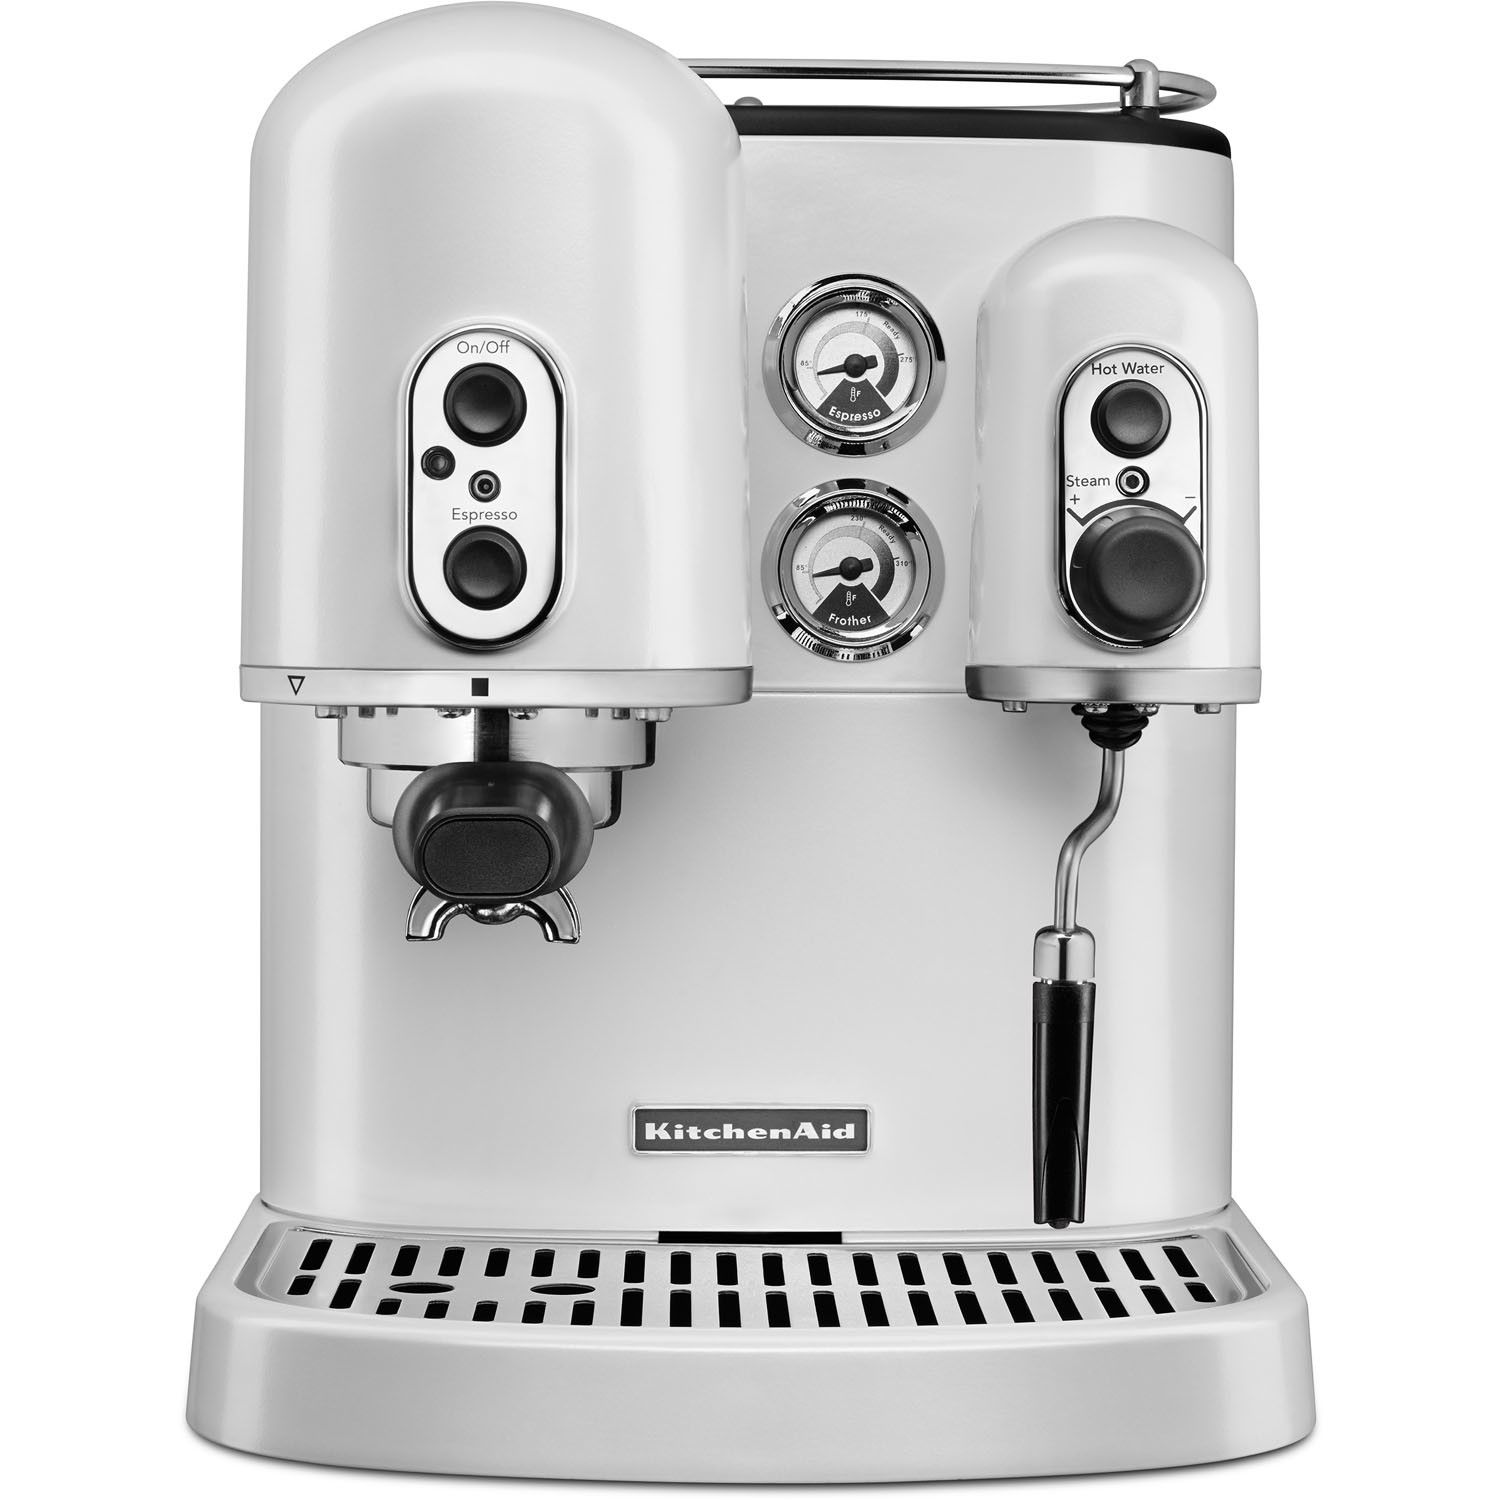 Manual Espresso Machines Best Machine Rok Presso Maker Classic Interesting Pro Line Coffee